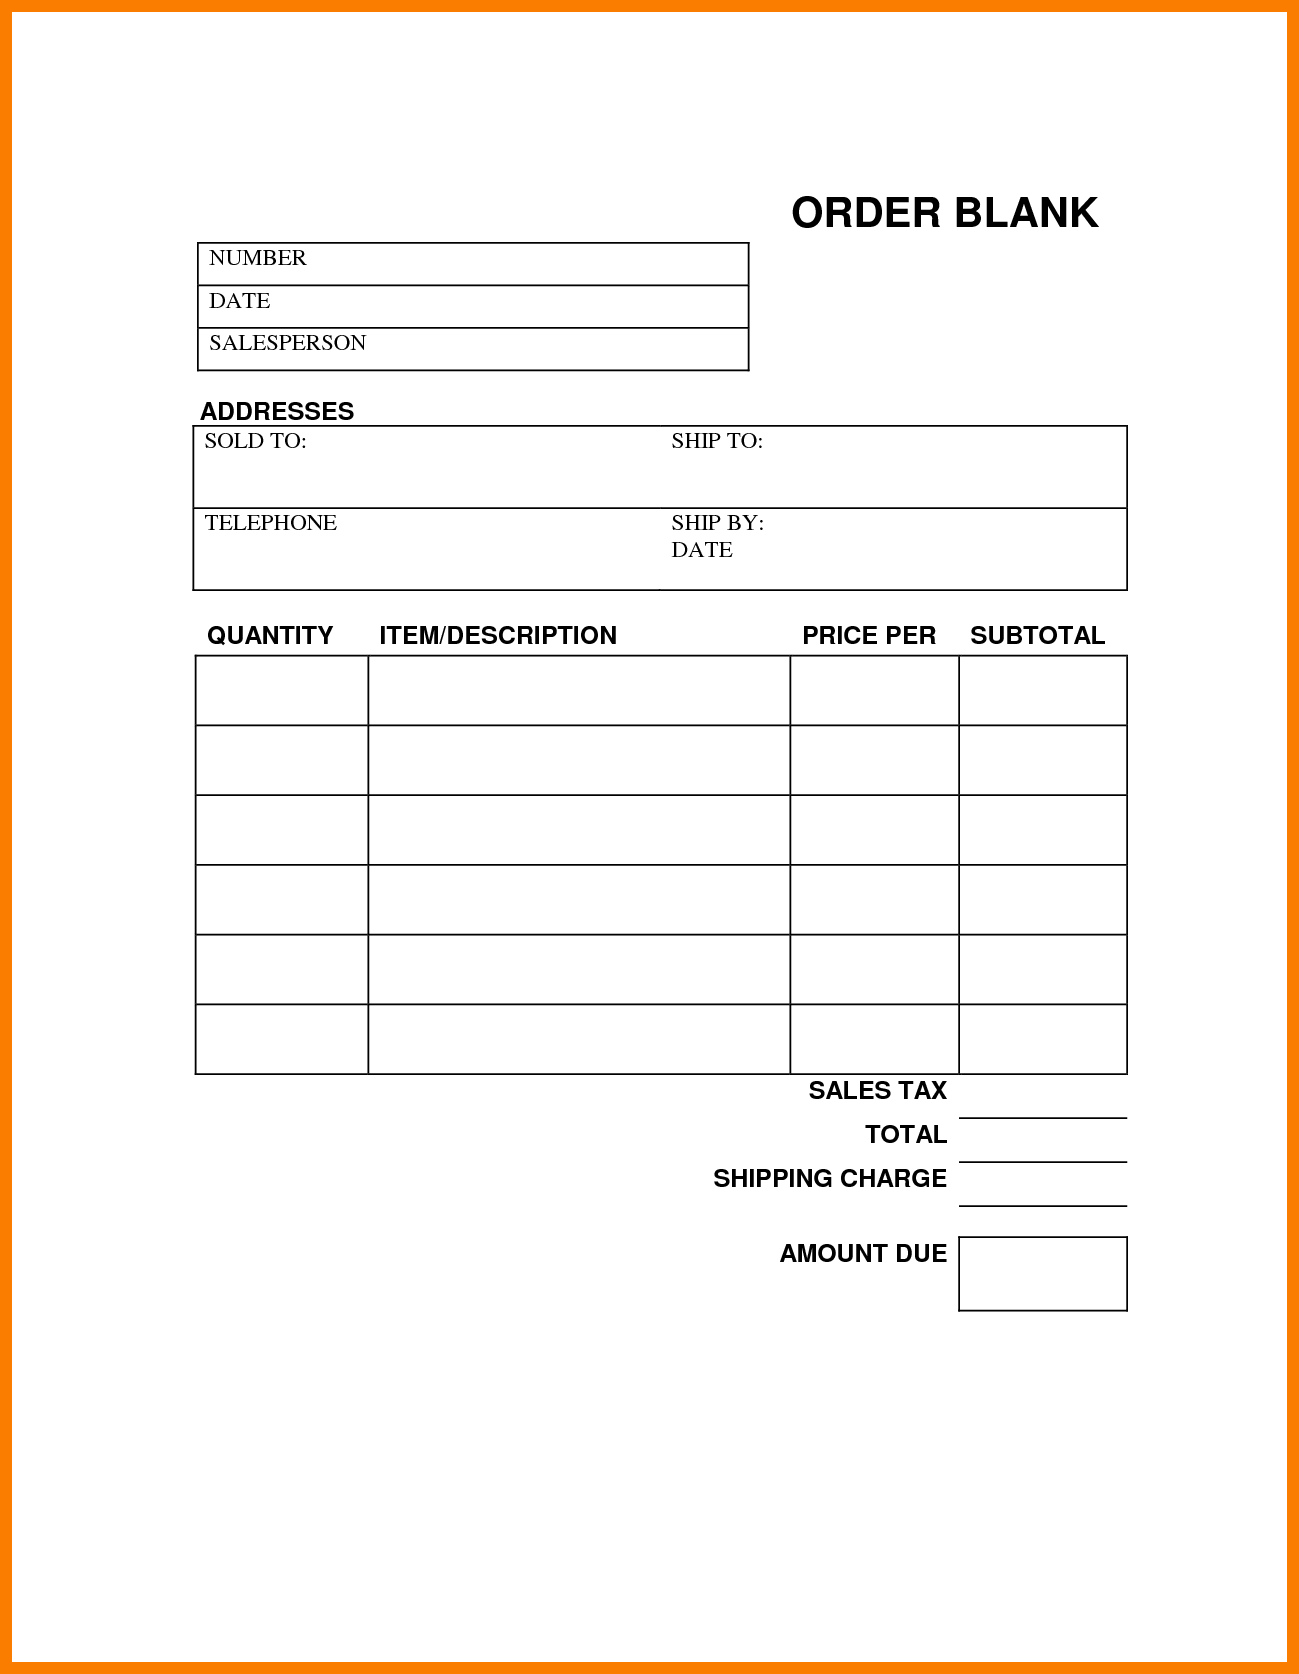 Sample Order Form Template Excel Tier.brianhenry.co